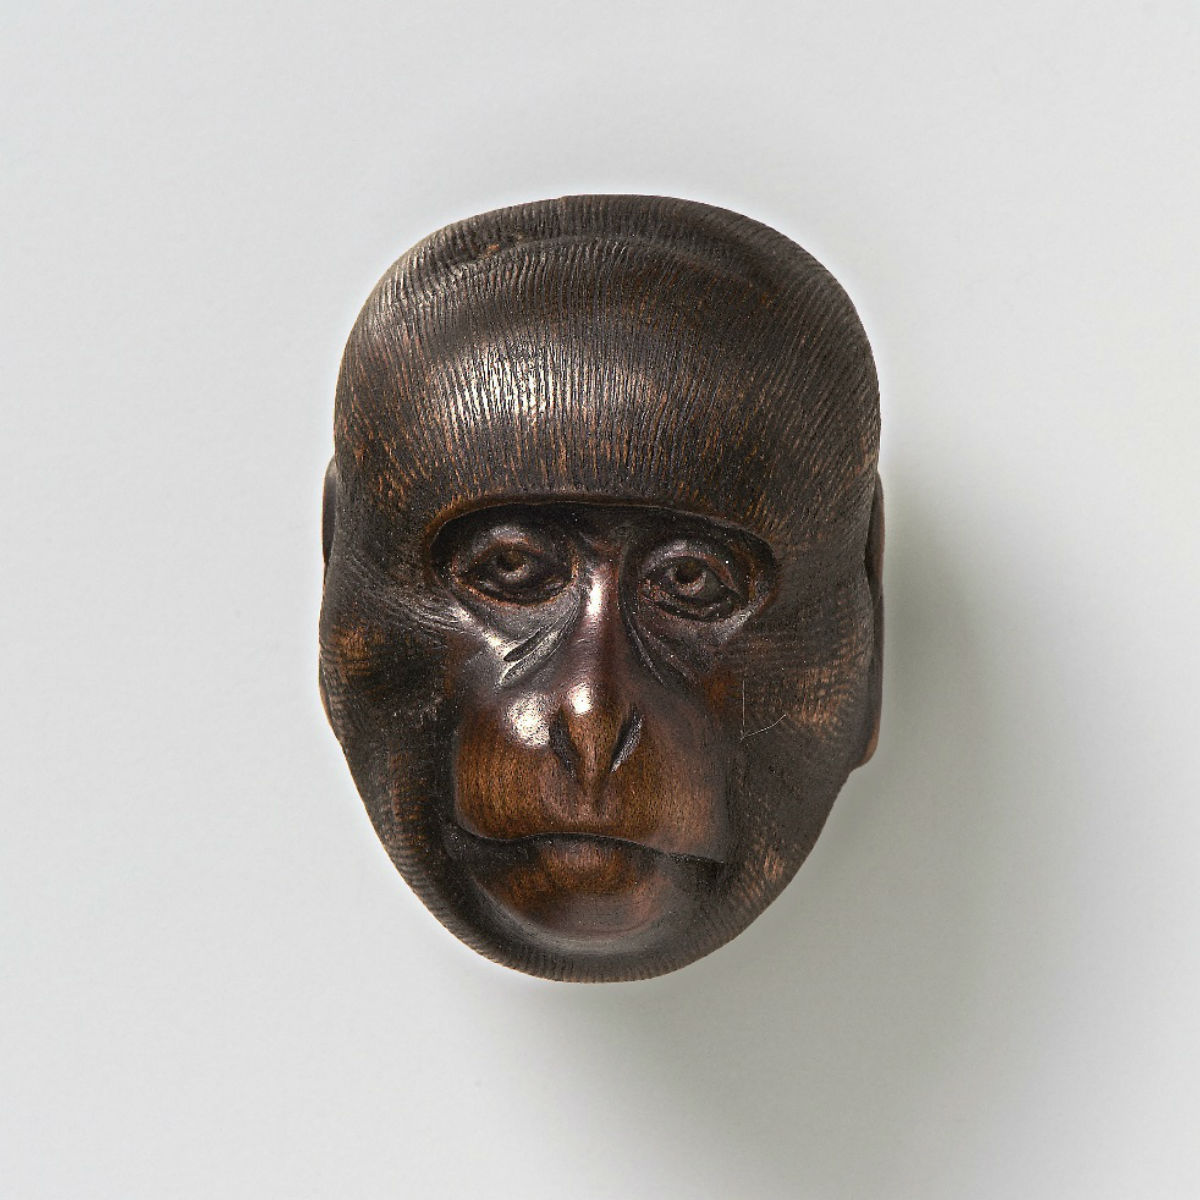 Wood Mask Netsuke - Saru-mr2354